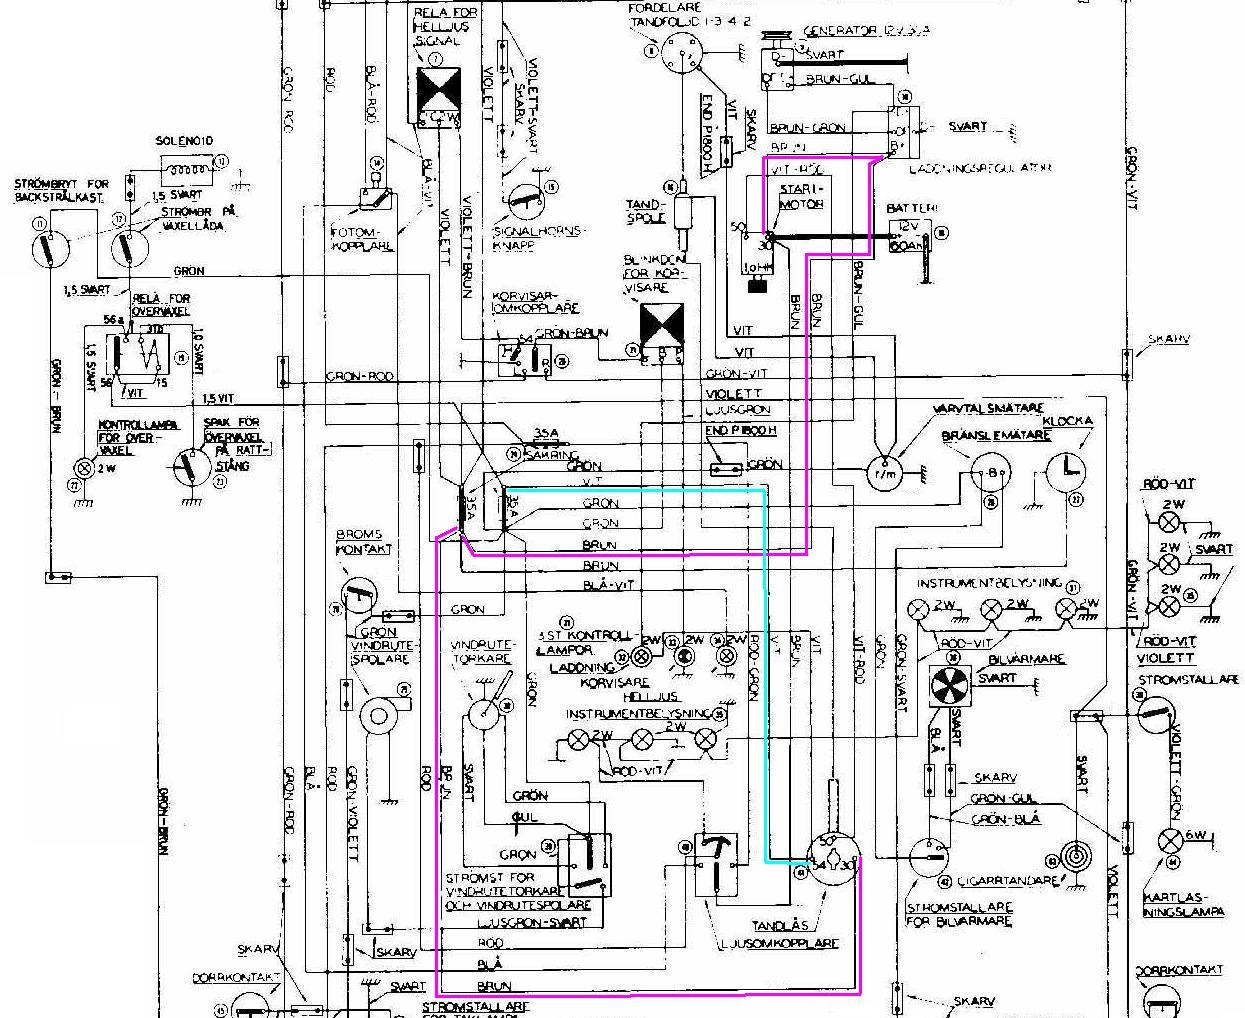 B S 6 Terminal Ignition Switch Wiring Diagram 45 Model A Ford Lzk Gallery 1800 Marked Up Swedish Vs British Design